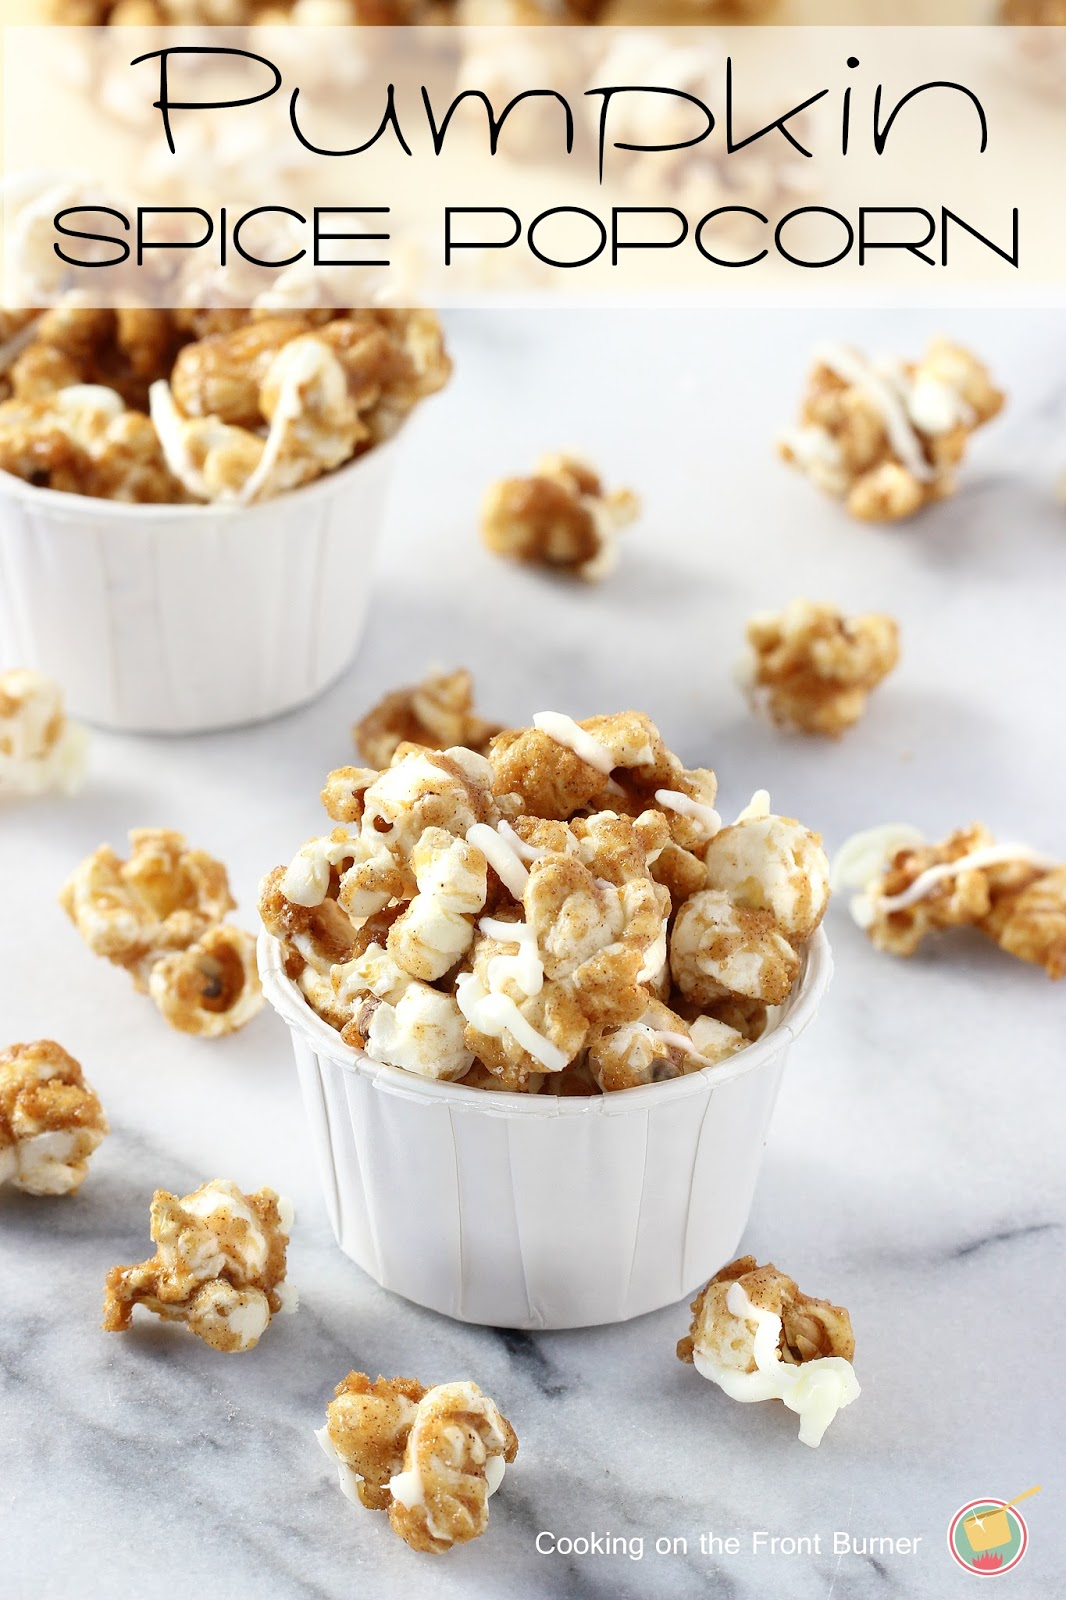 Pumpkin Spice Popcorn |Cooking on the Front Burner